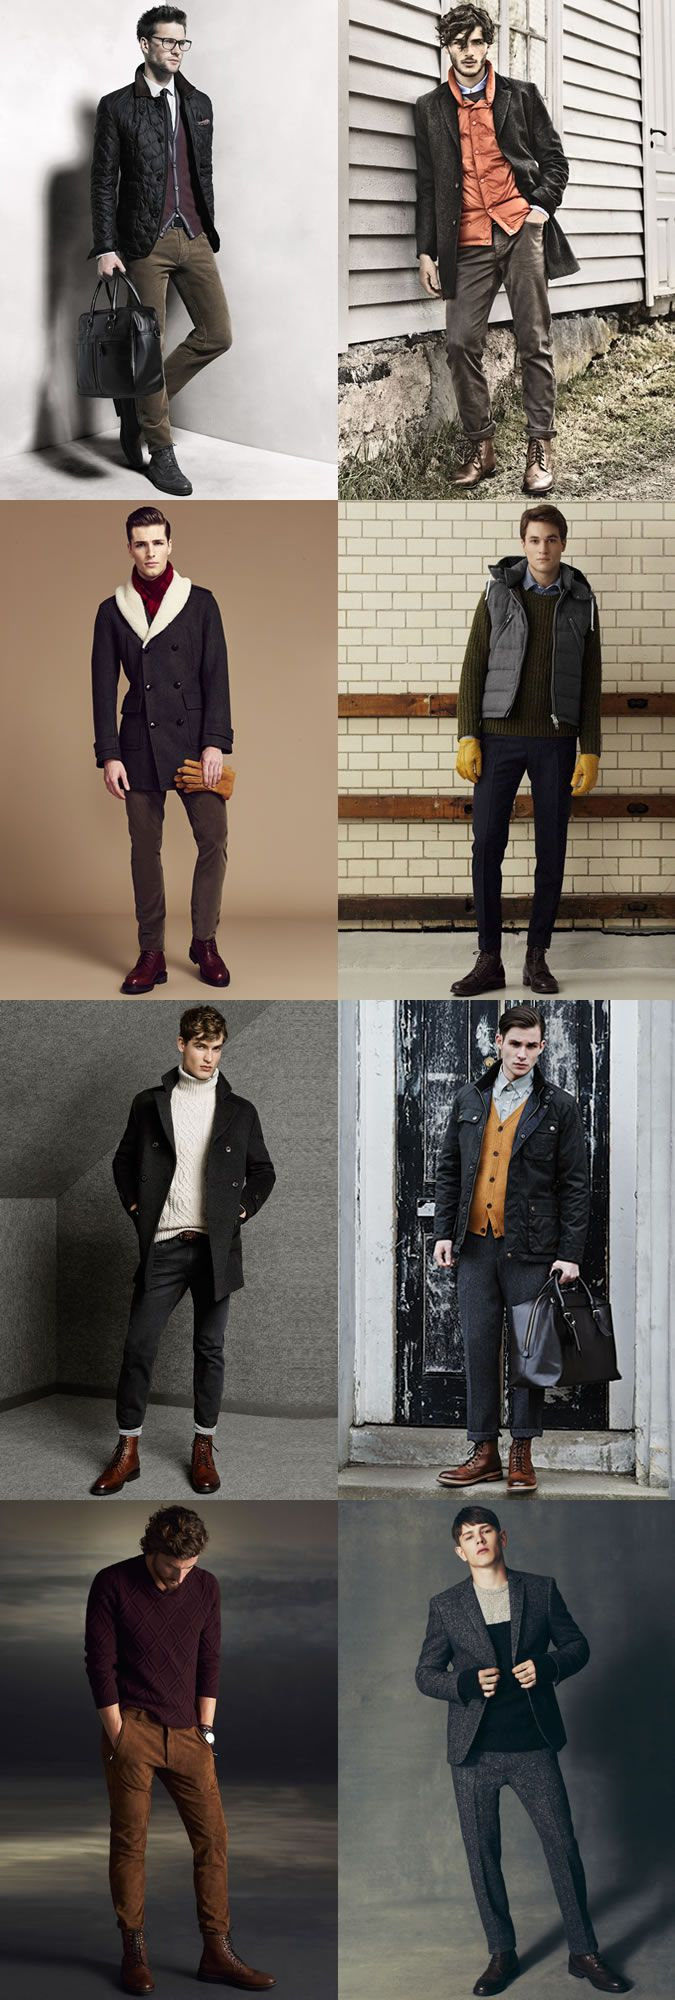 Men's Brogue Boots + Heritage Clothing Outfit Inspiration Lookbook